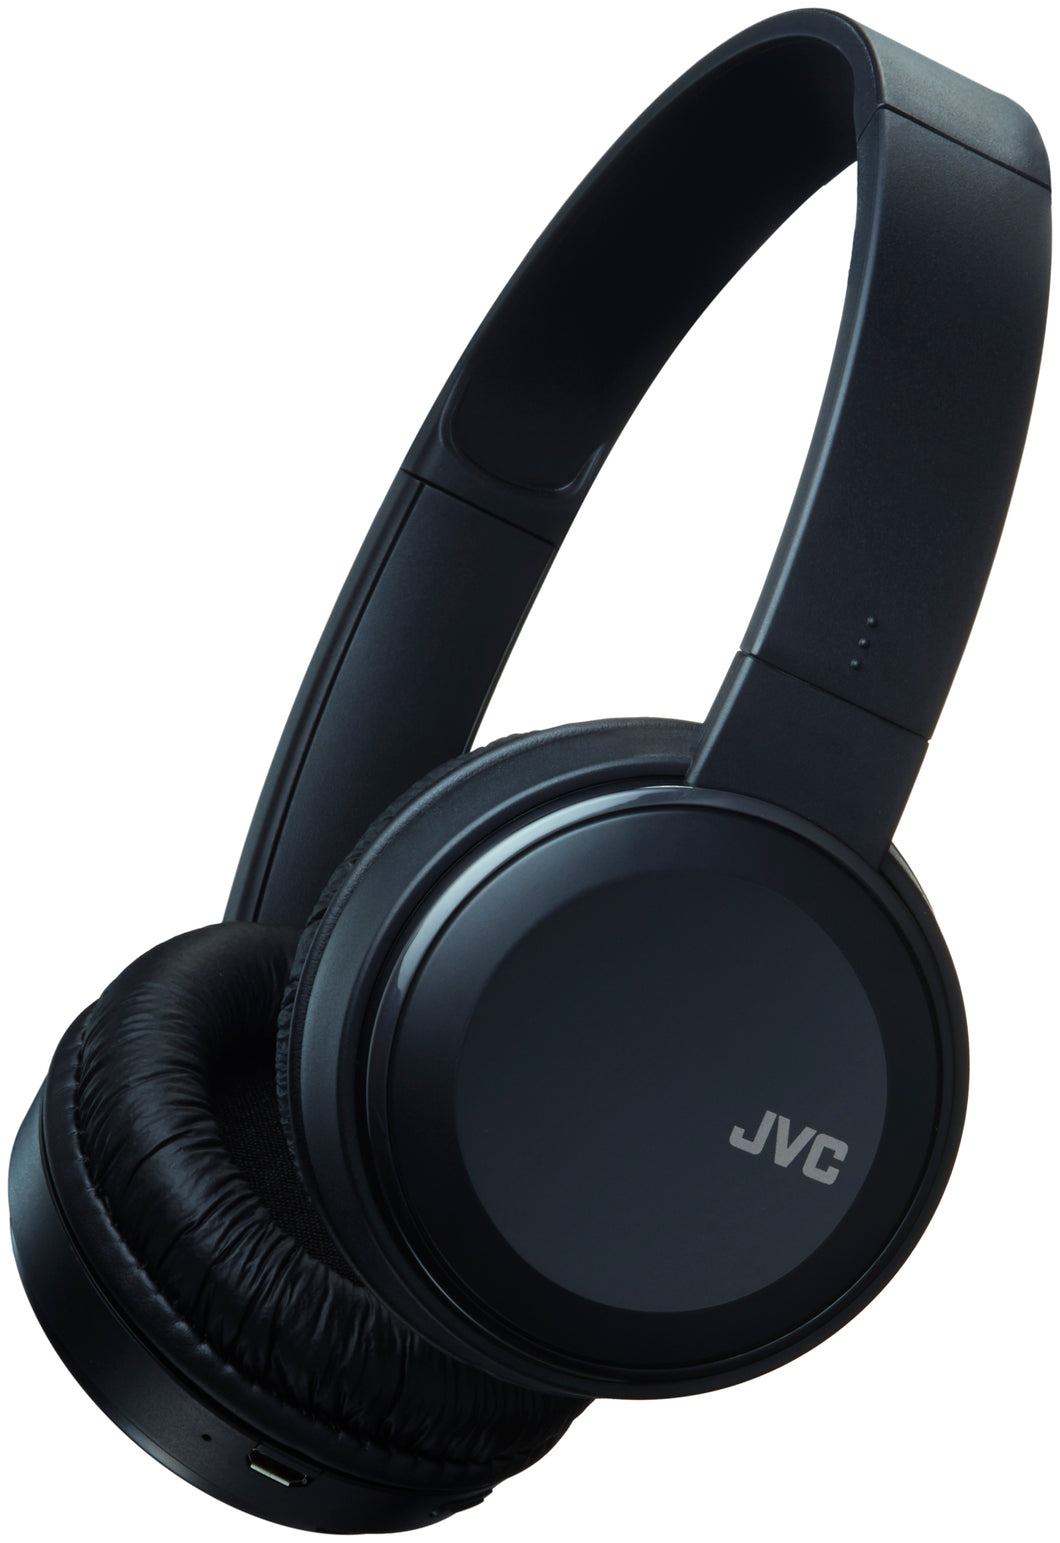 JVC HS-S190BT Wireless Headphones